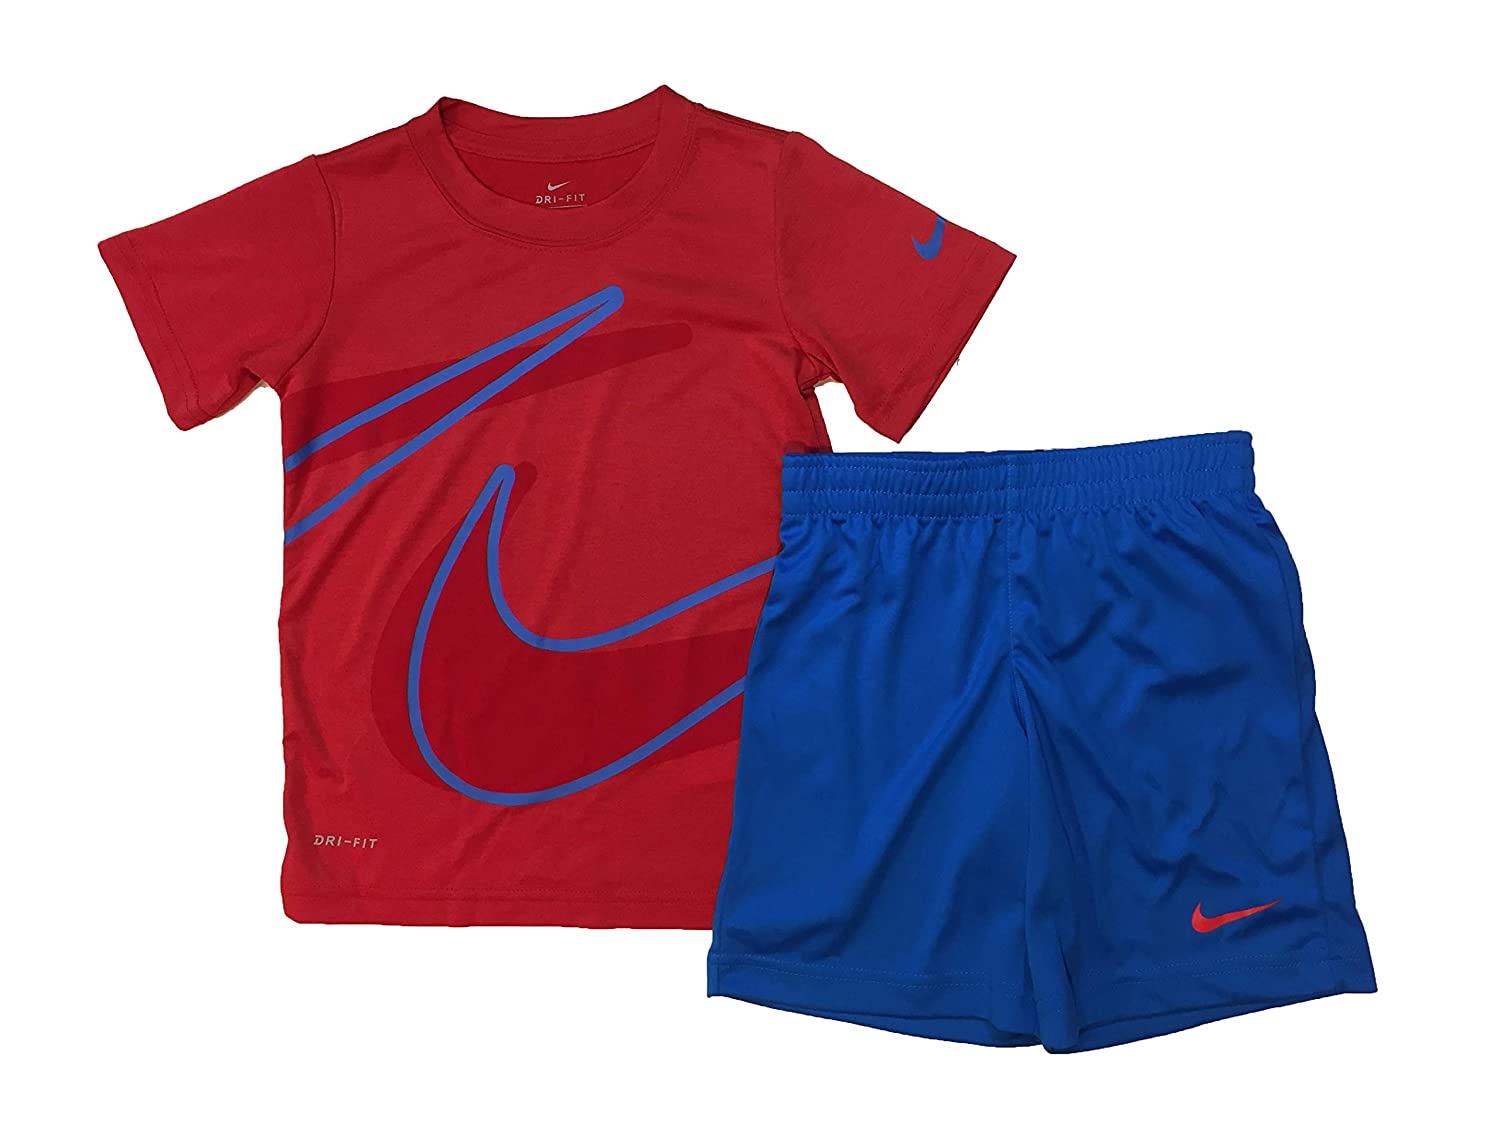 dce9aecc740 Amazon.com  Nike Boy`s Dri-Fit T-Shirt   Shorts 2 Piece Set  Sports    Outdoors